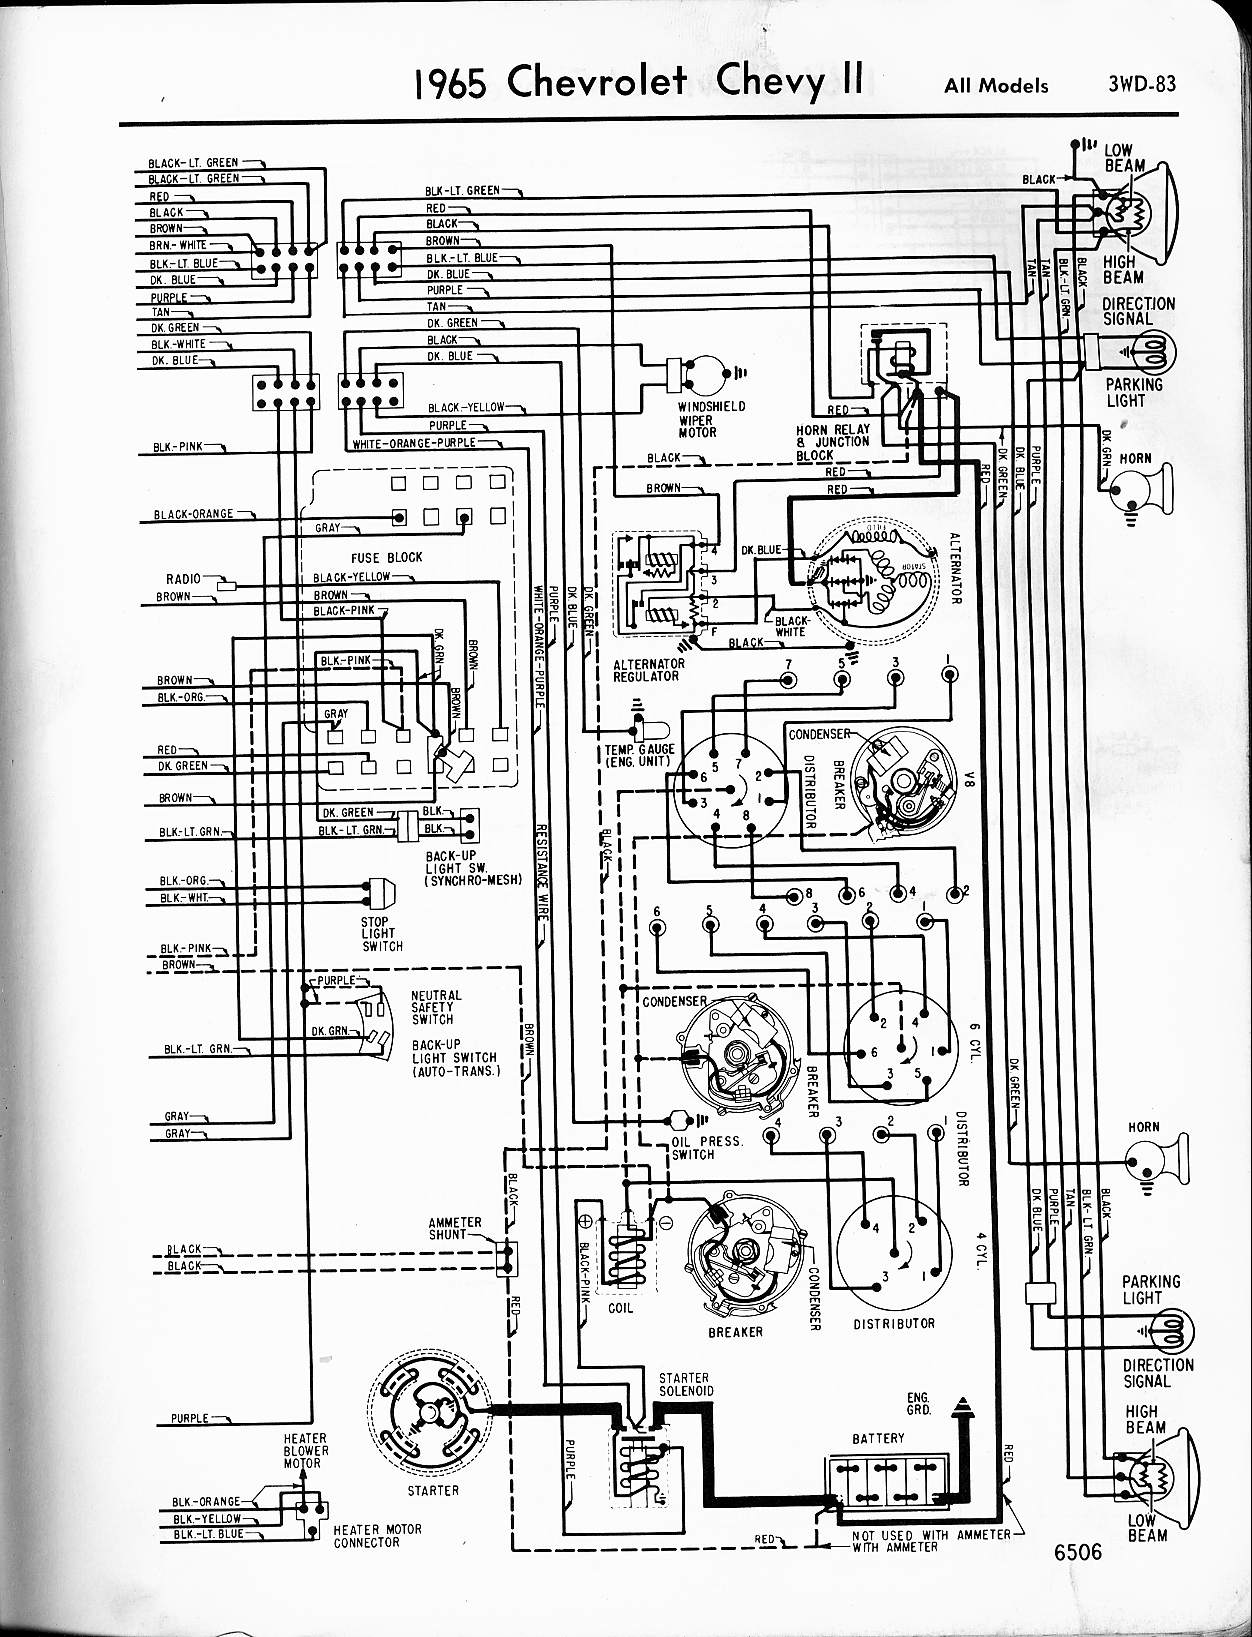 83 Vw Alternator Wiring Diagram Library Trike Diagrams Moreover 65 Mustang Harness 1965 Chevy Ii Figure A B